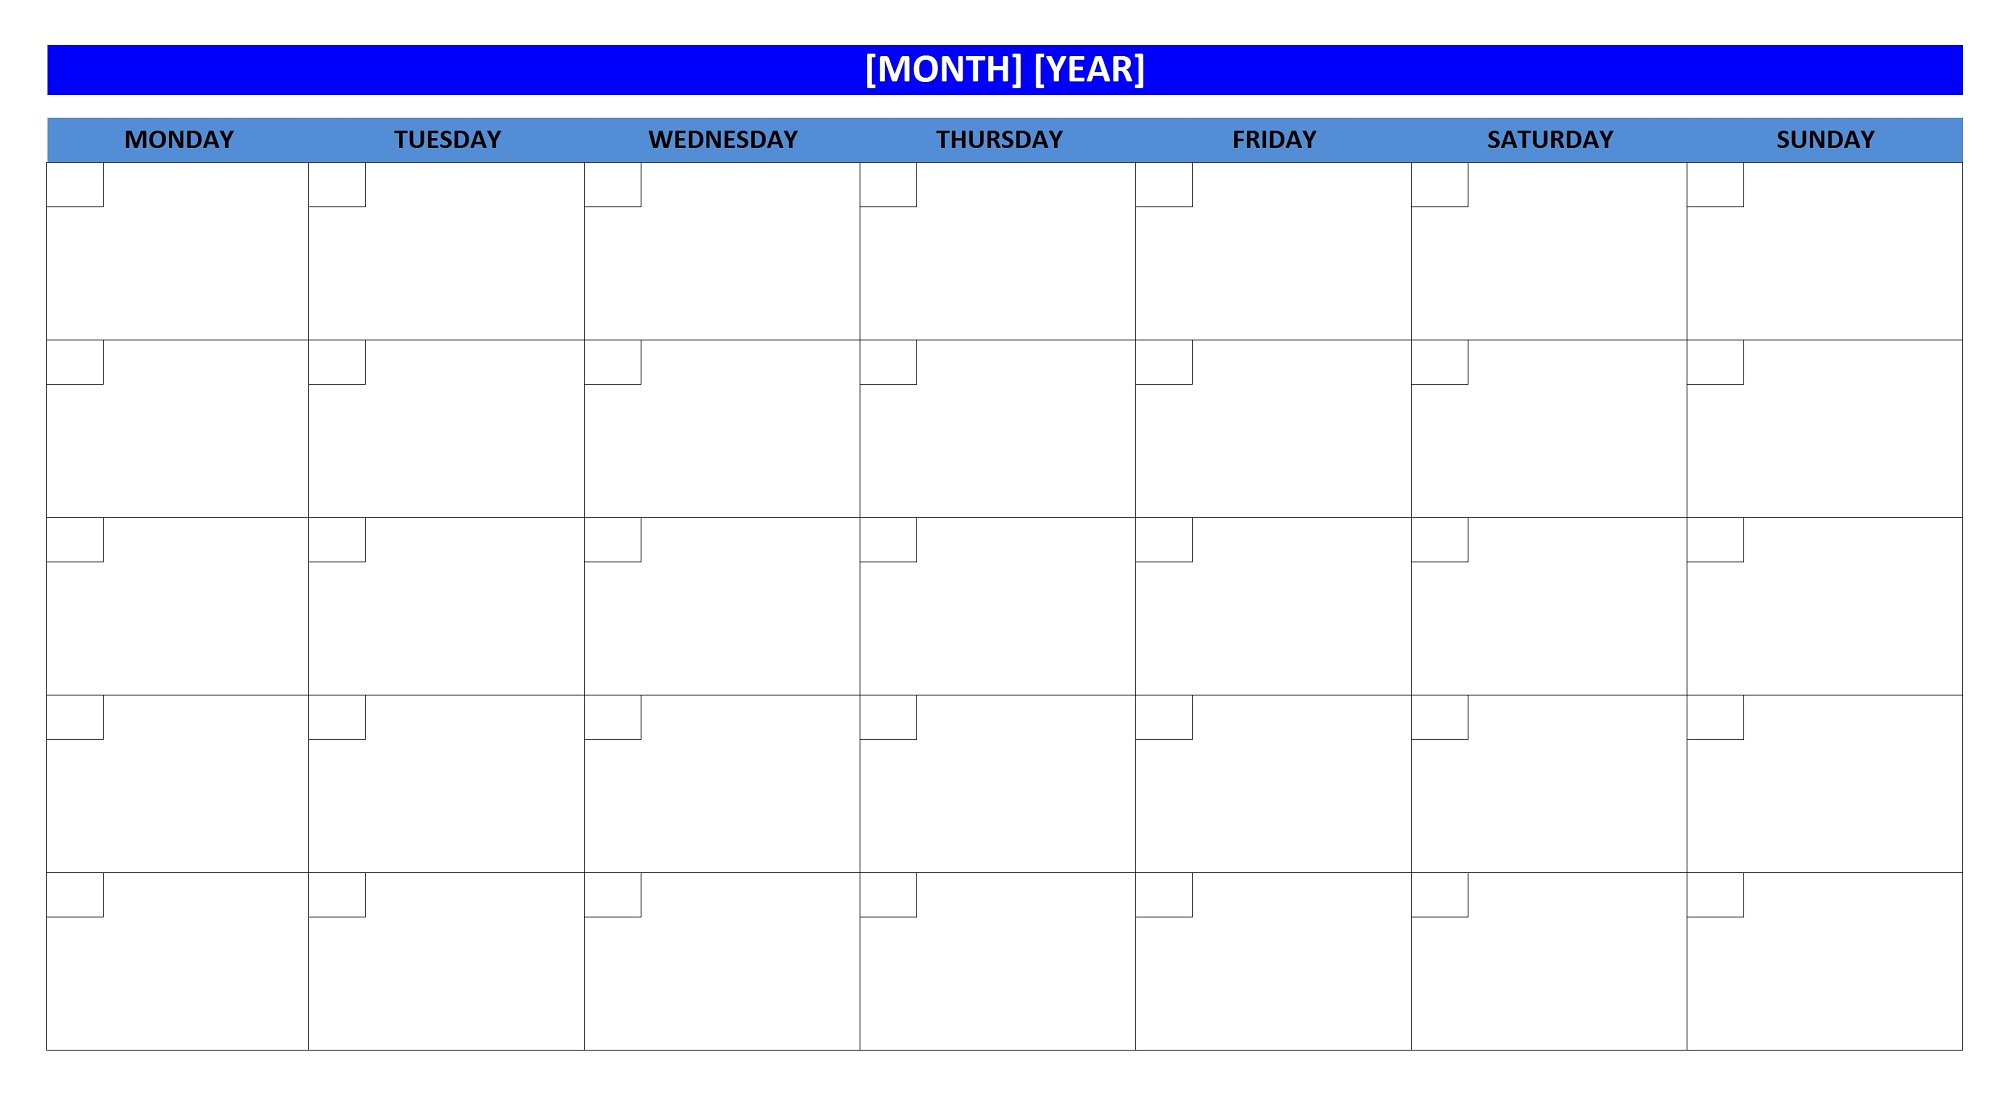 Calendar Monthly Planner : Blank weekly calendars printable activity shelter